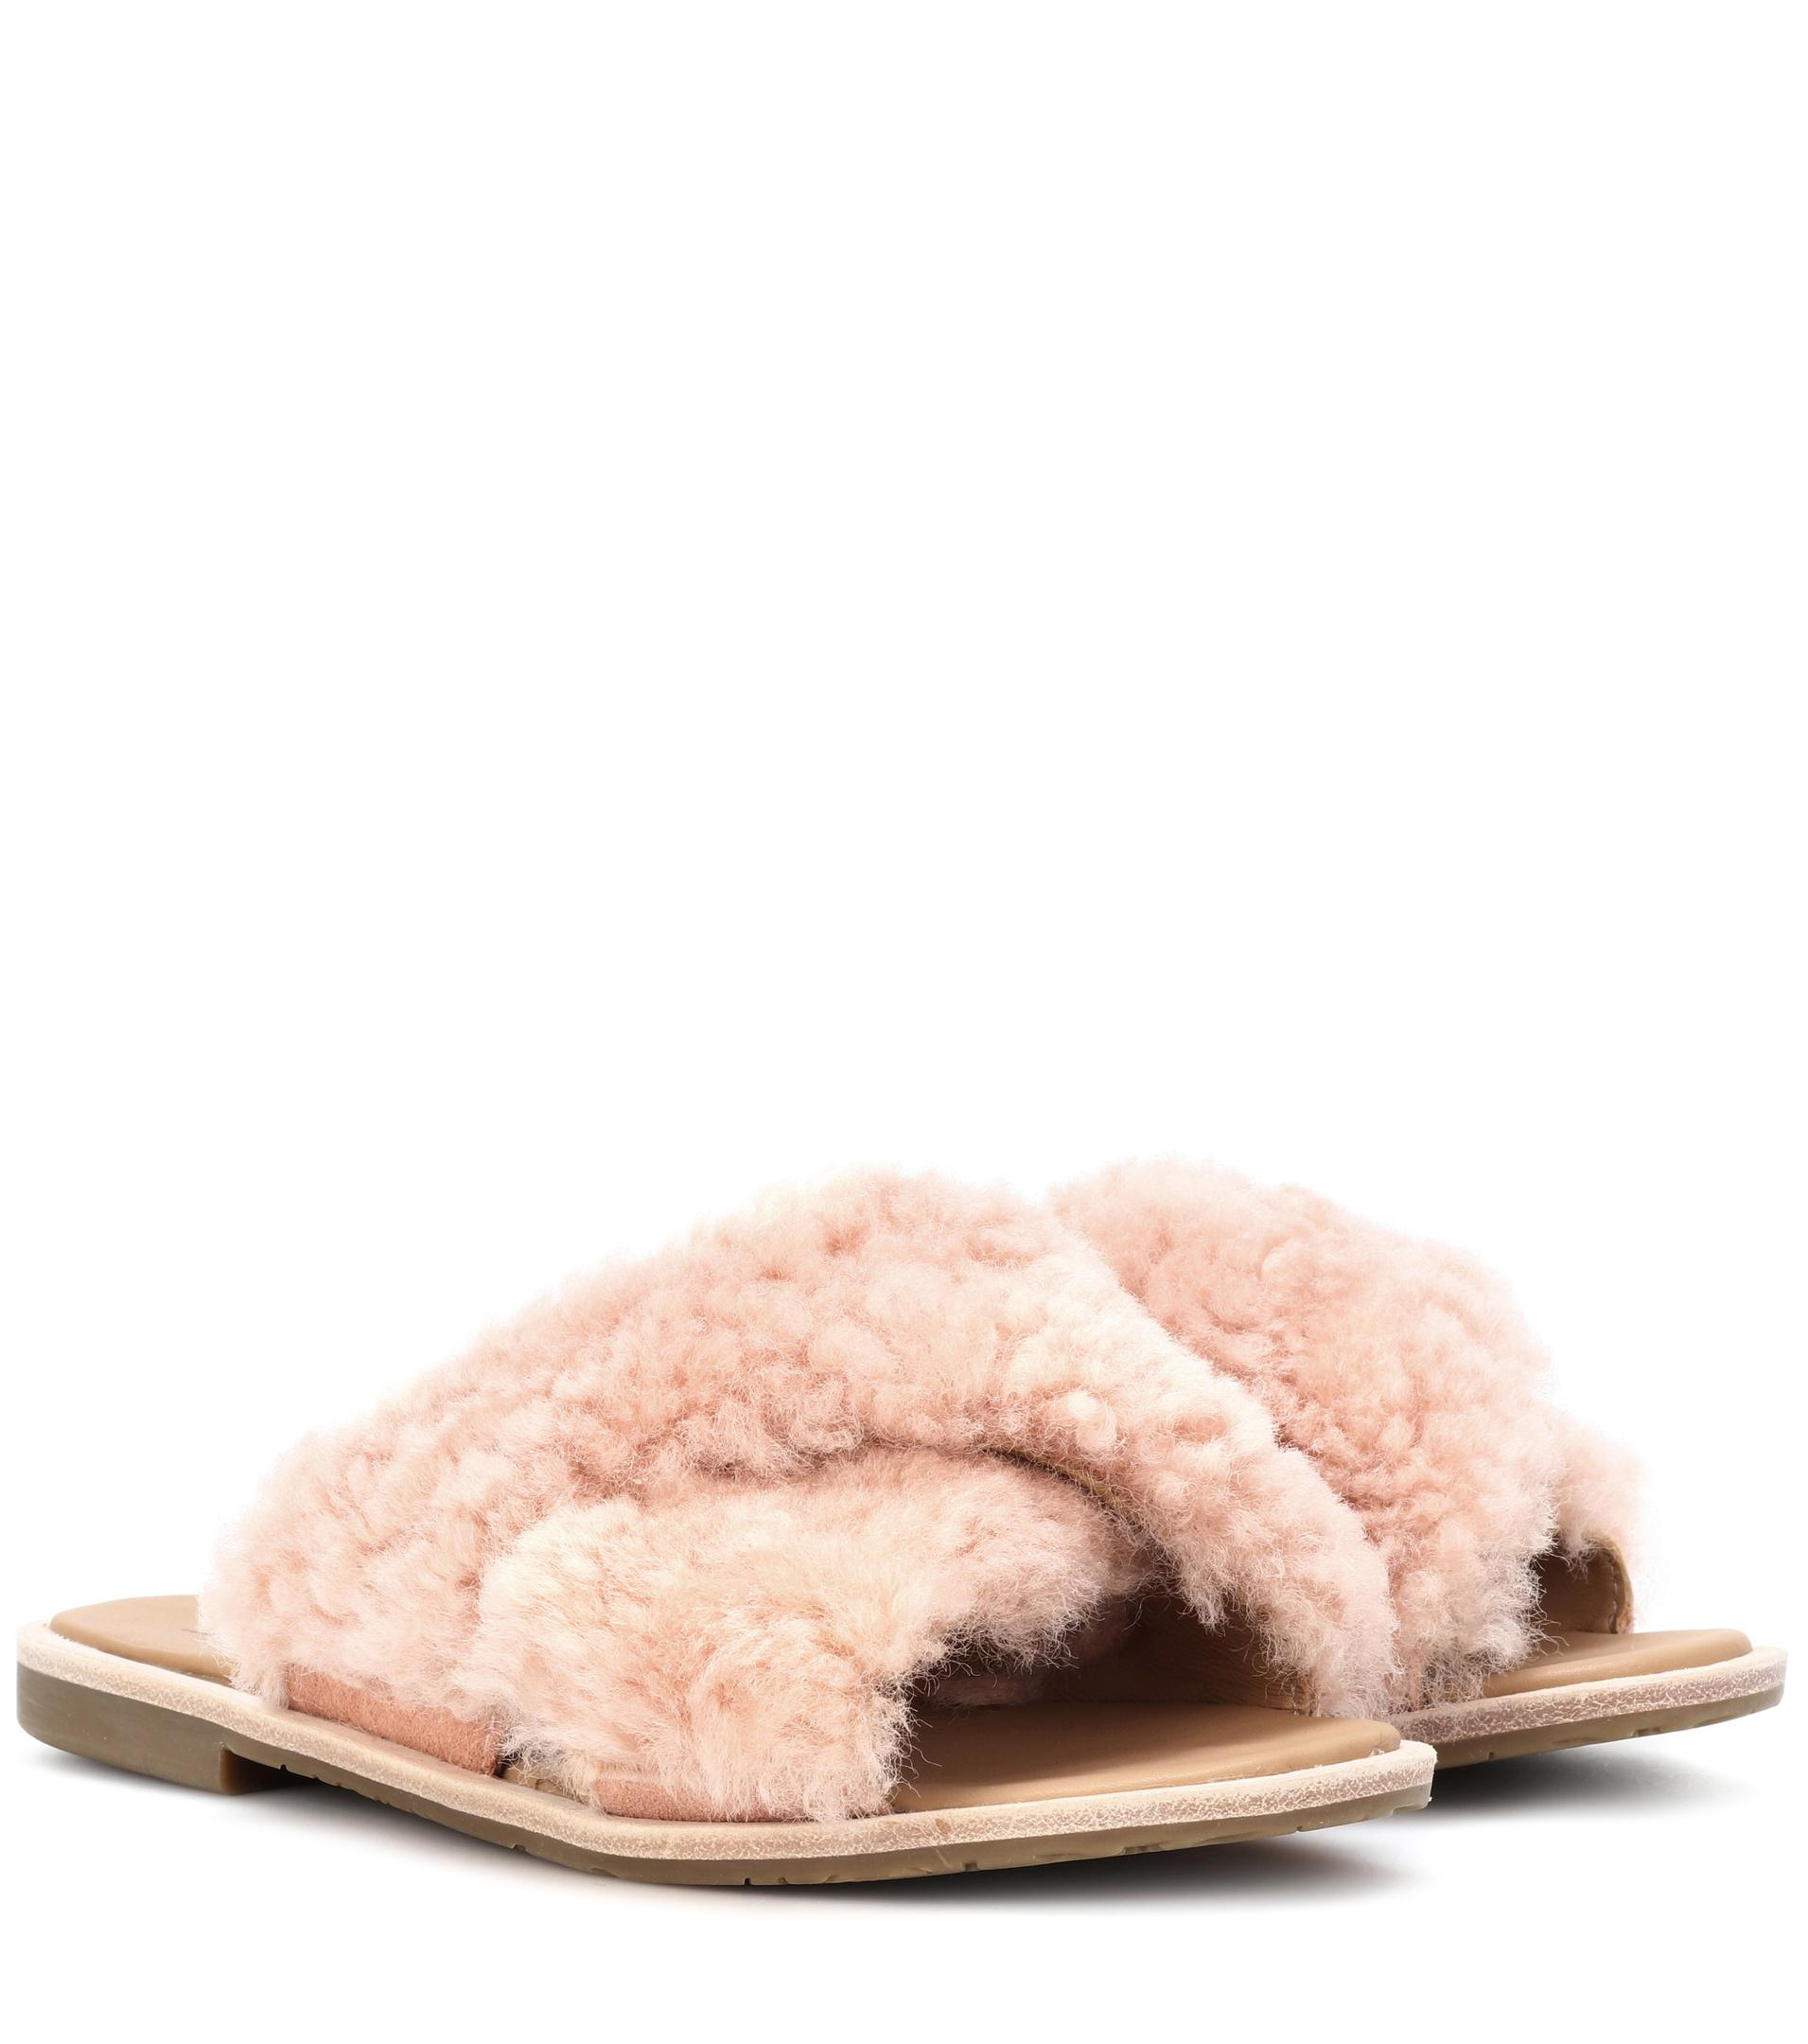 UGG Sandals JONI fur rose Buy Cheap Low Shipping Fee Low Price Cheap Price Outlet Explore fyRQaH